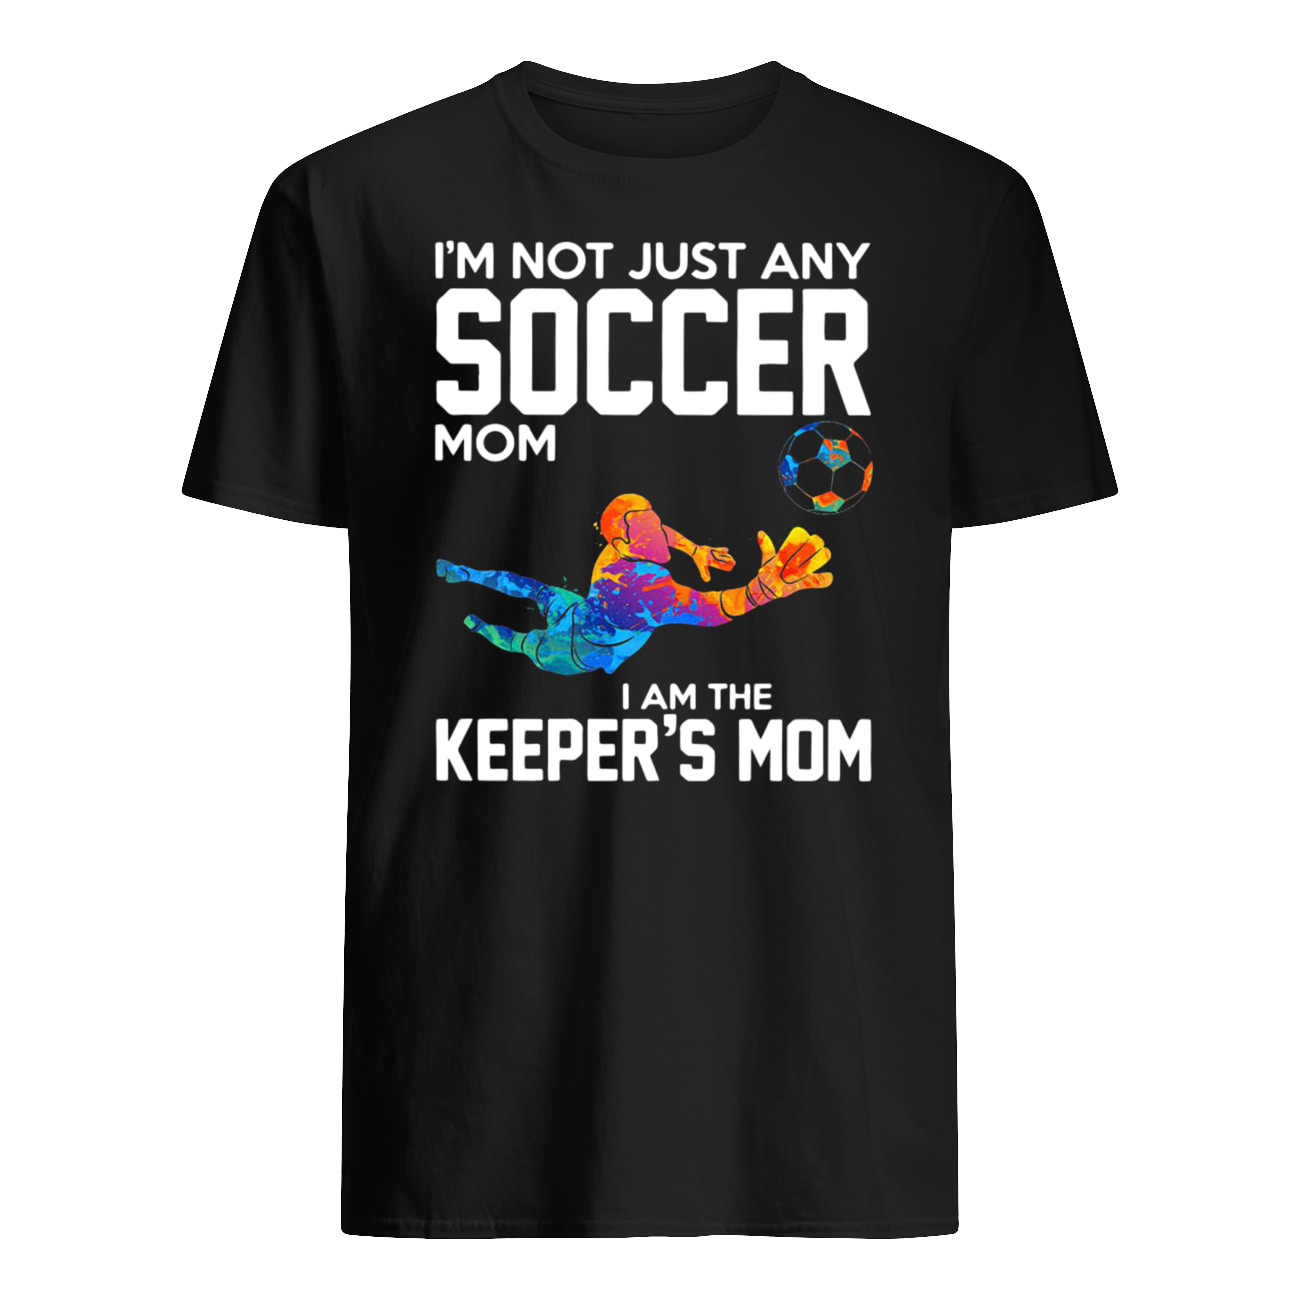 I'm not just any soccer mom I am the keeper's mom mens shirt